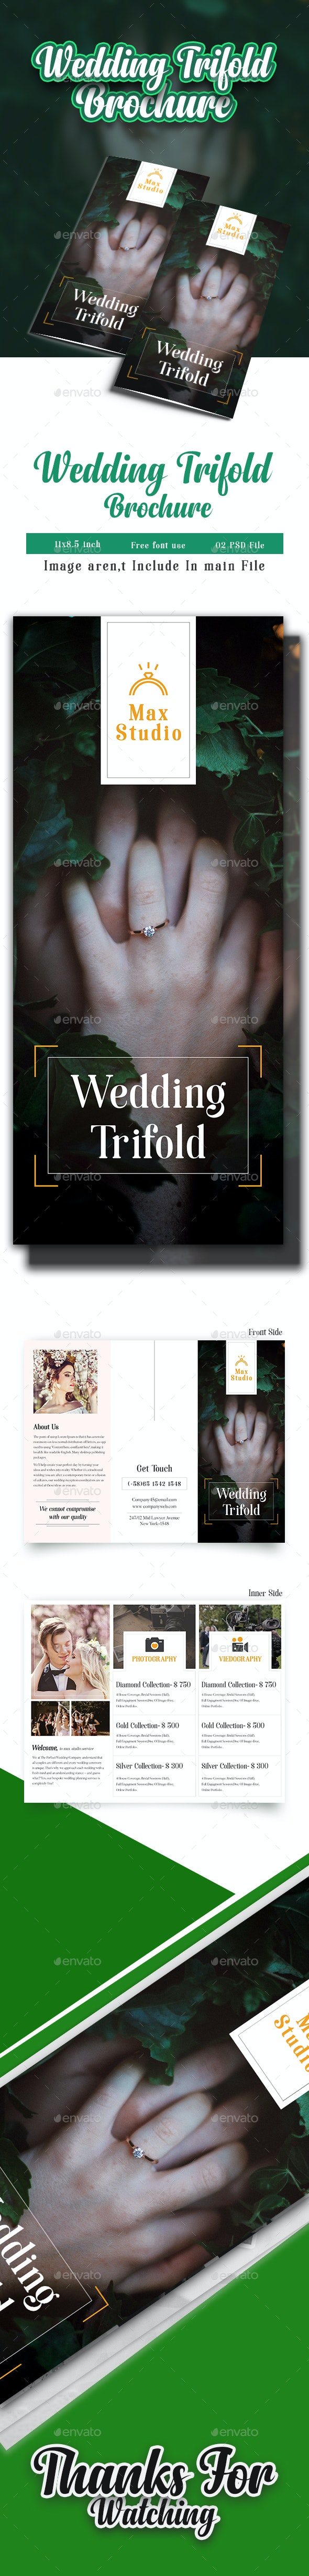 Wedding Trifold Brochure - Brochures Print Templates